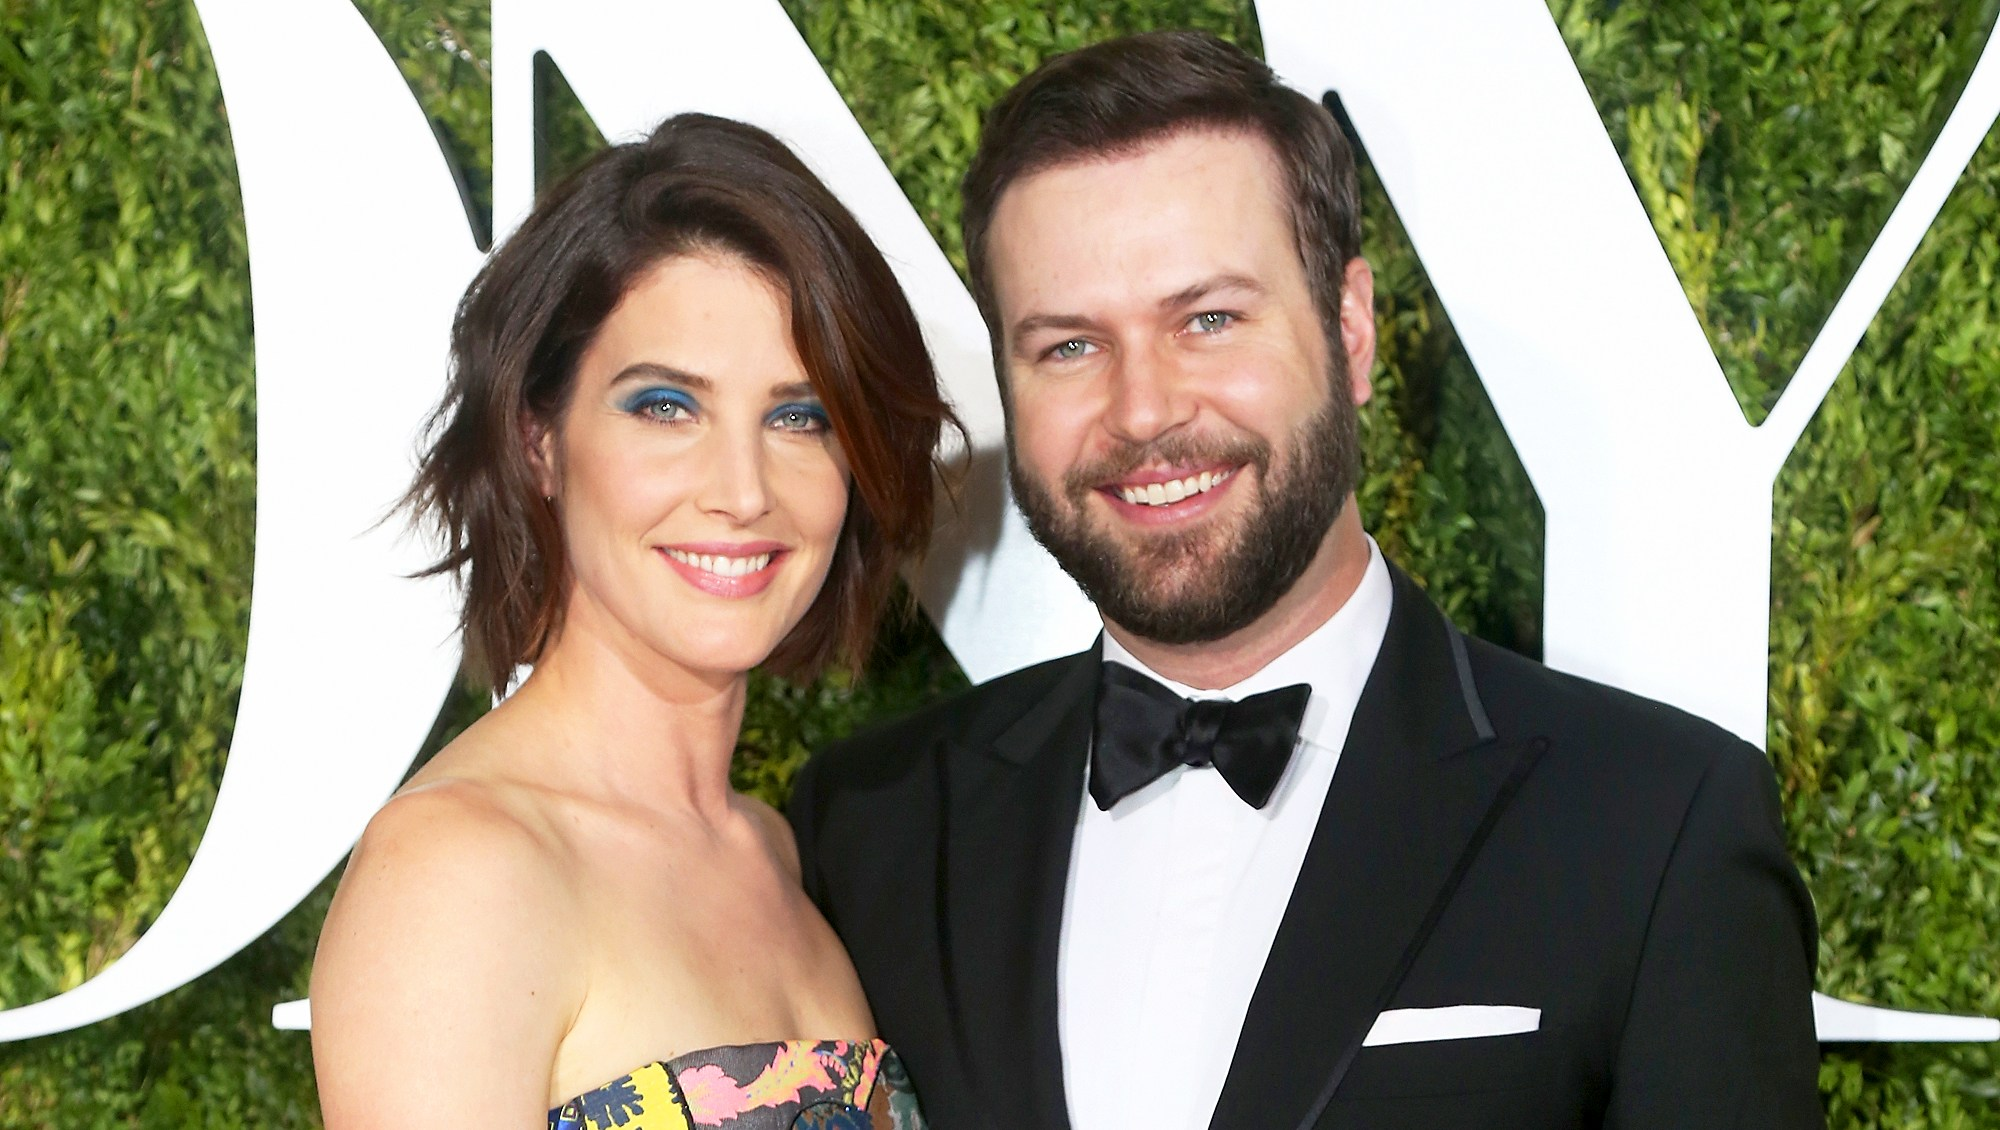 Cobie Smulders and Taran Killam attend the 71st Annual Tony Awards at Radio City Music Hall on June 11, 2017 in New York City.